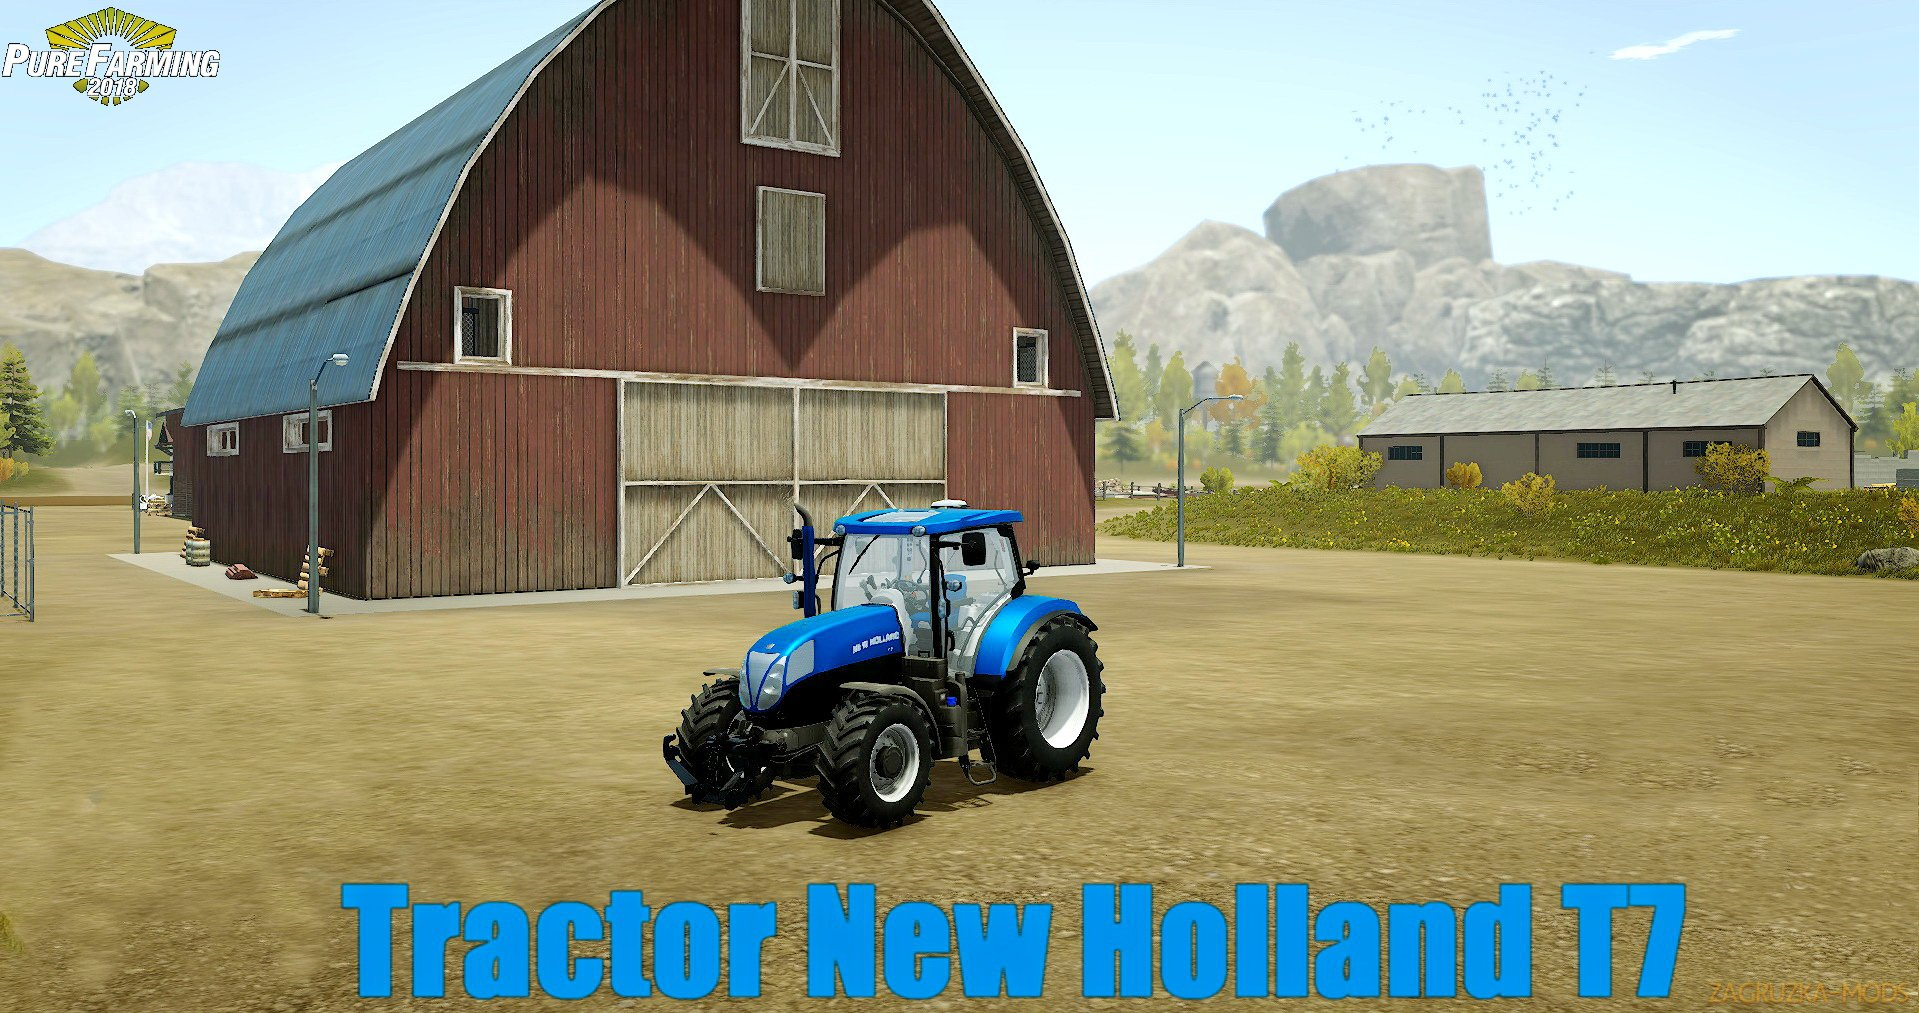 Tractor New Holland T7 v1.0 for Pure Farming 2018